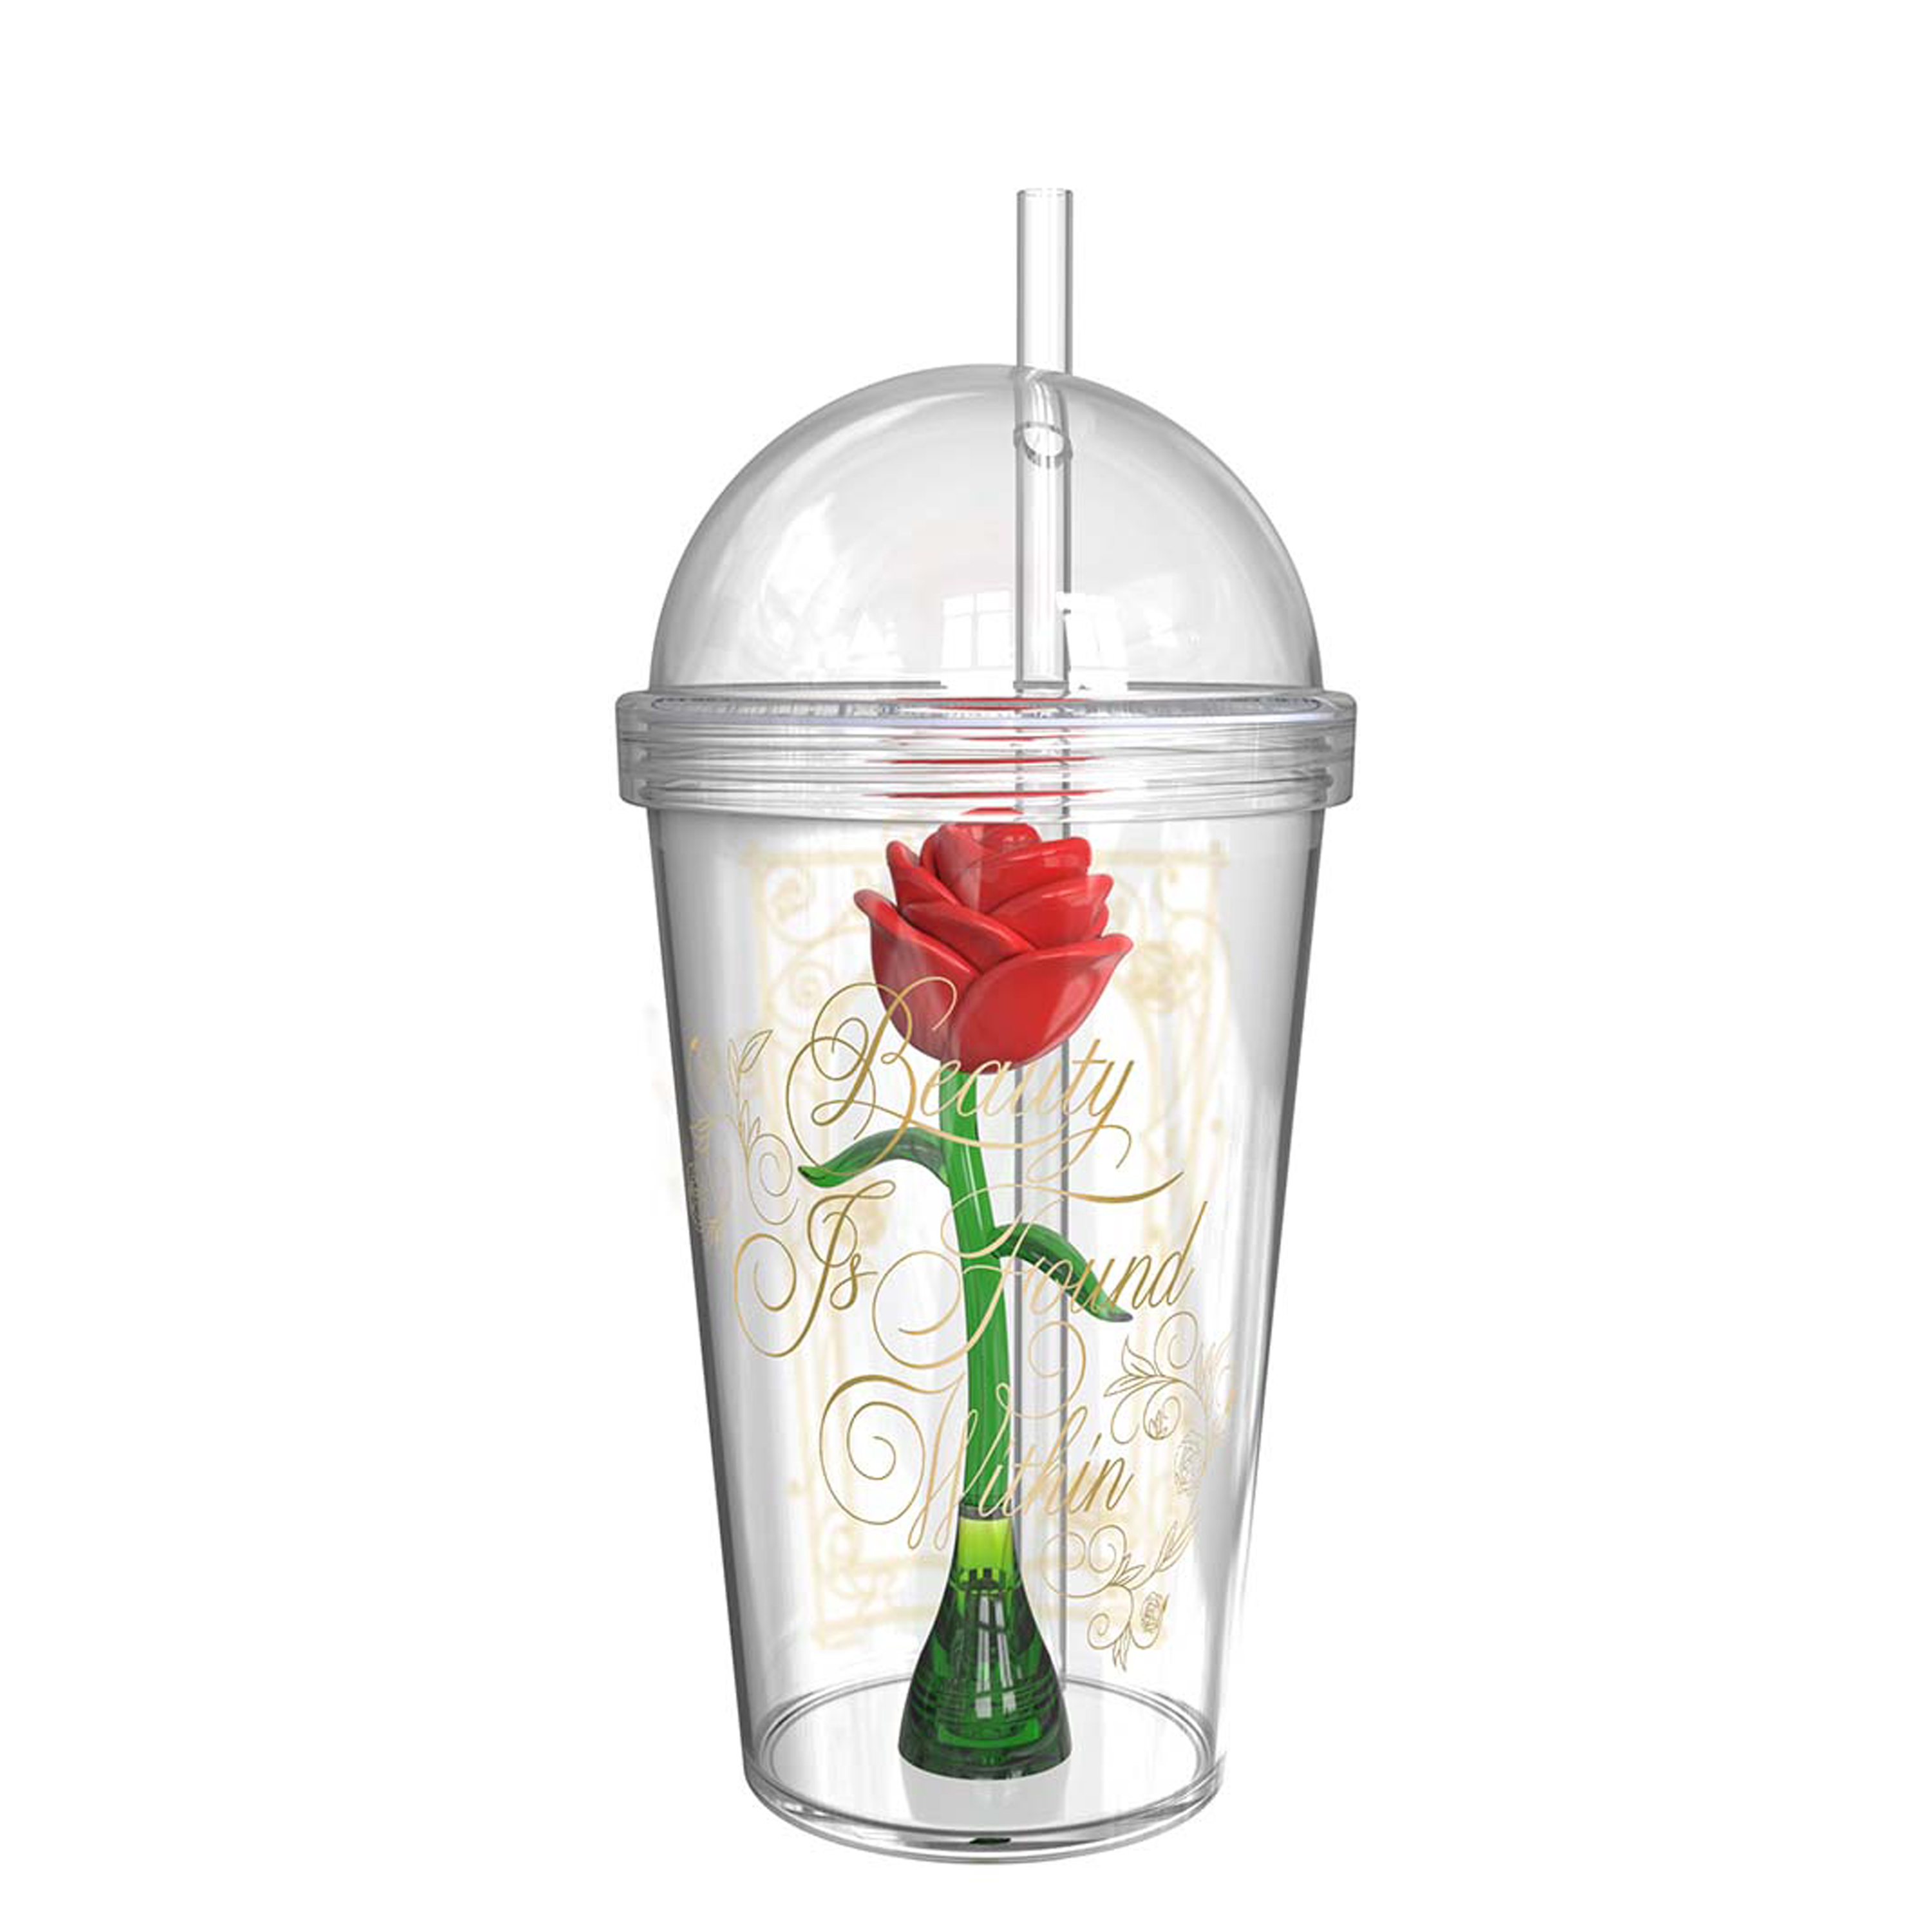 Beauty And The Beast 22 ounce Kid's Tumbler, Enchanted Rose slideshow image 1